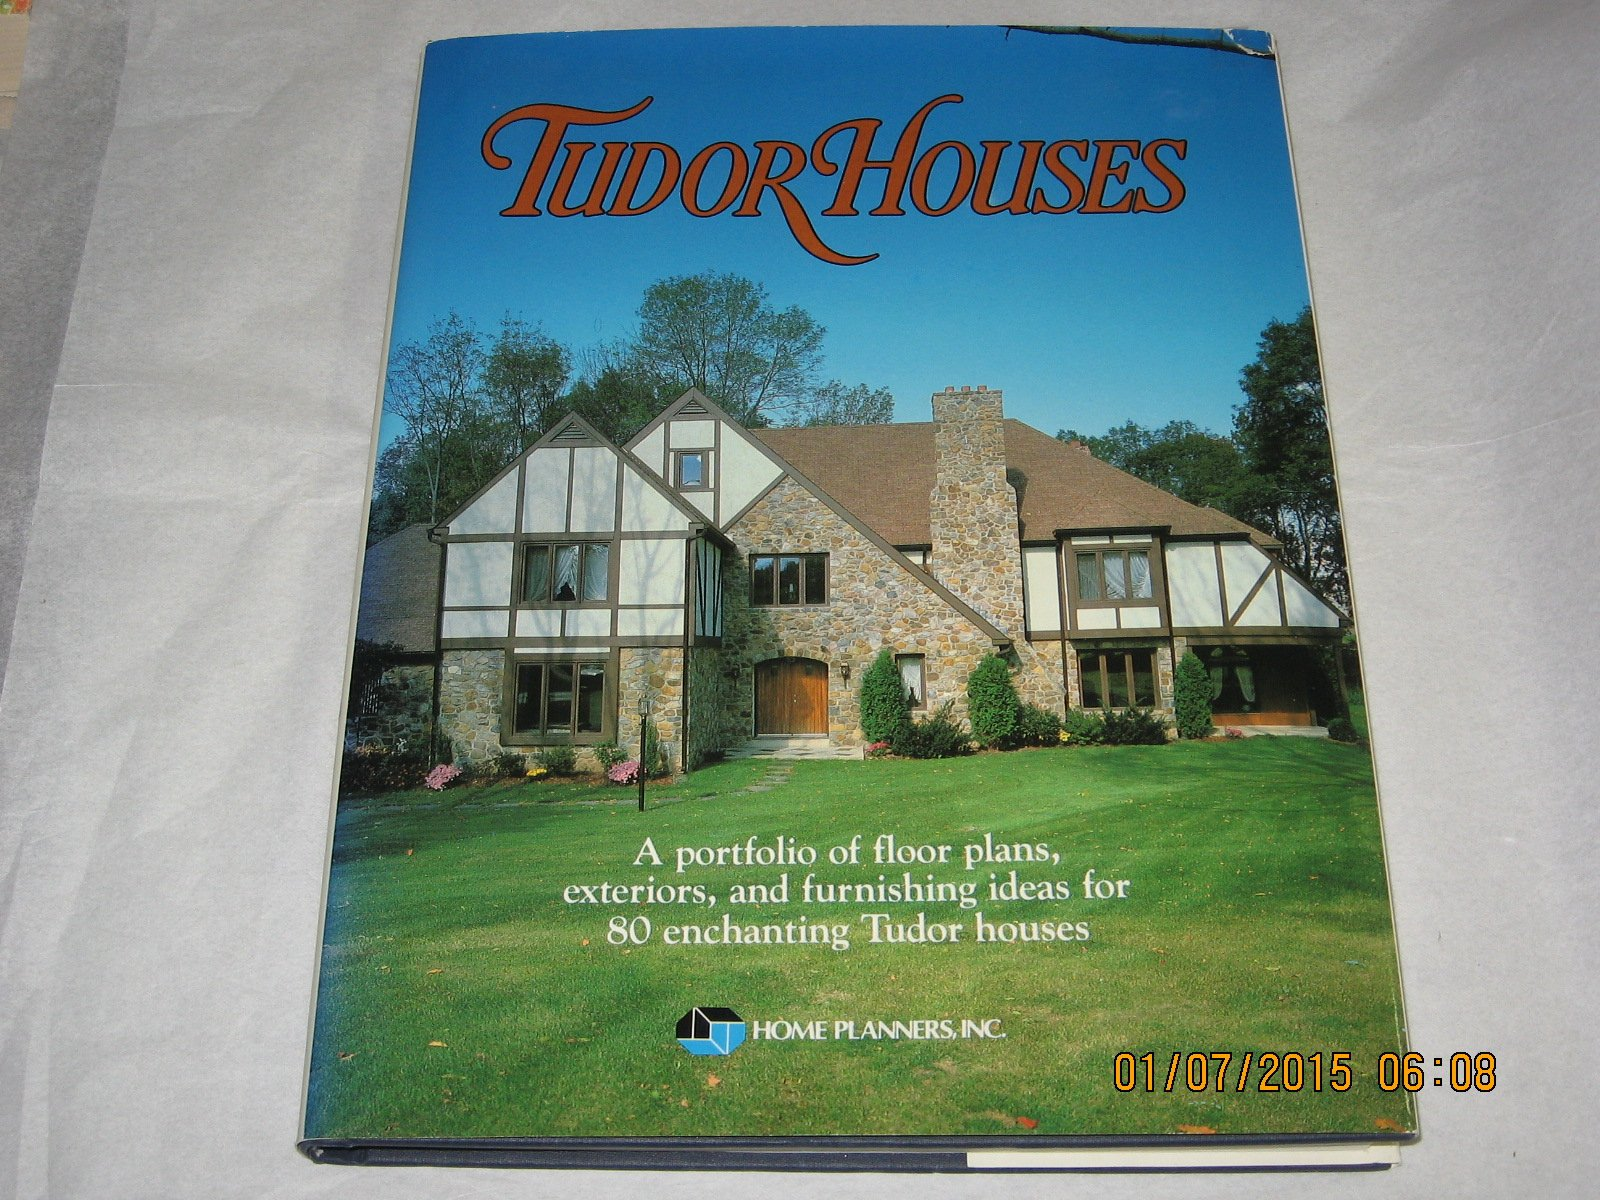 Tudor Houses: A portfolio of floor plans, exteriors, and furnishing on colonial revival garden design, old world garden design, bungalow garden design, prairie garden design, new american garden design, traditional garden design, mobile home garden design, farmhouse garden design, mediterranean garden design, british colonial garden design, contemporary garden design, victorian garden design, moorish garden design, mid century garden design, southwestern garden design, spanish style garden design, tuscan garden design, gothic garden design, medieval garden design, multi-level garden design,